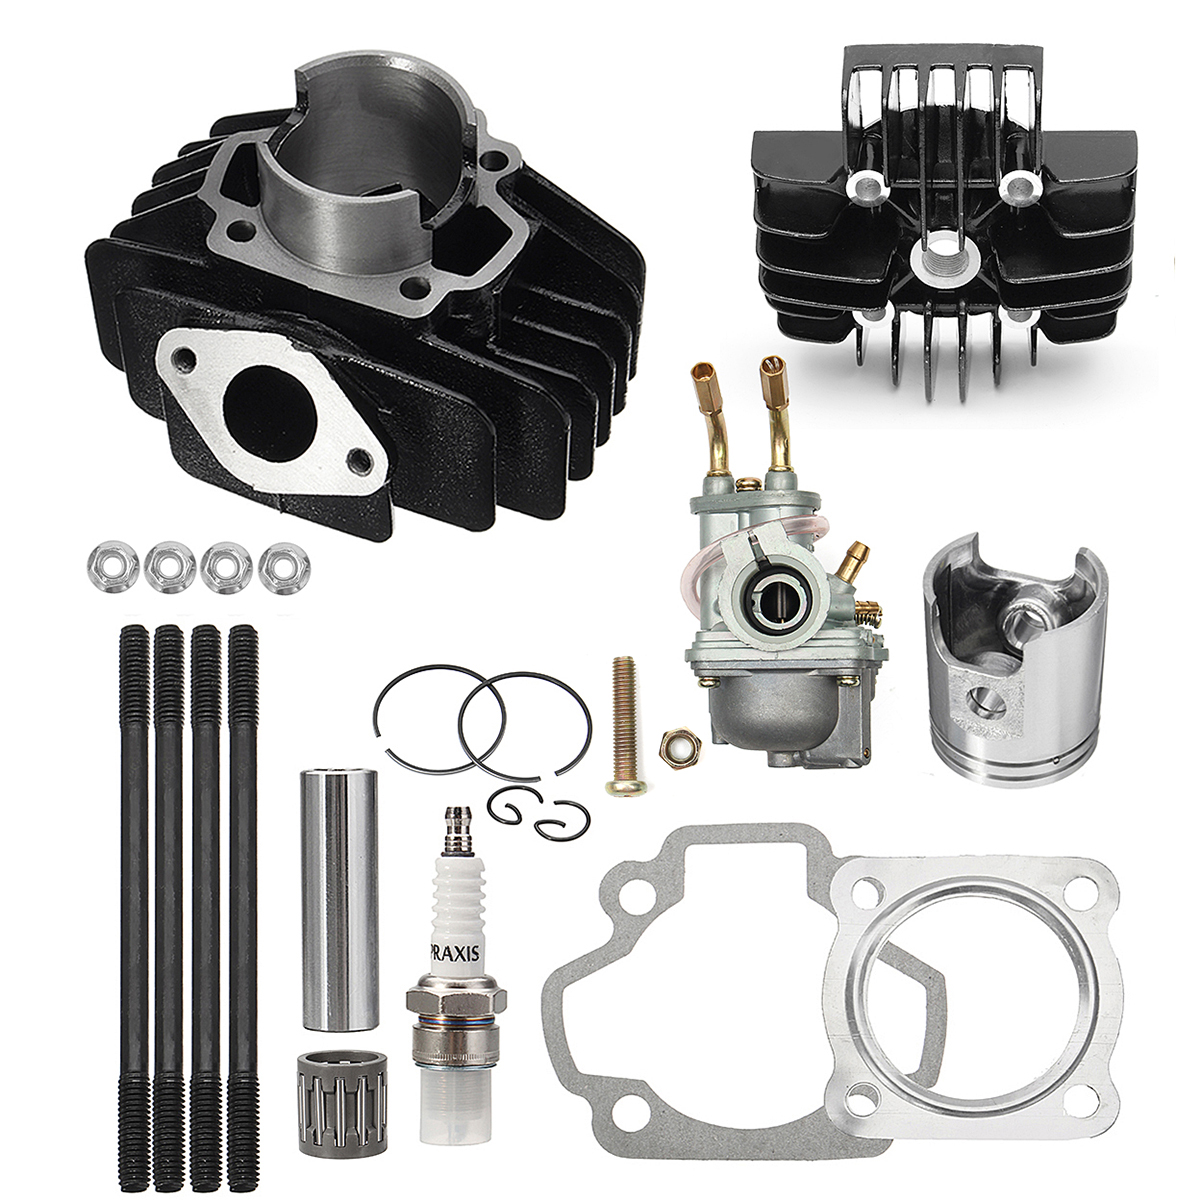 Cylinder Head PW50 Kit